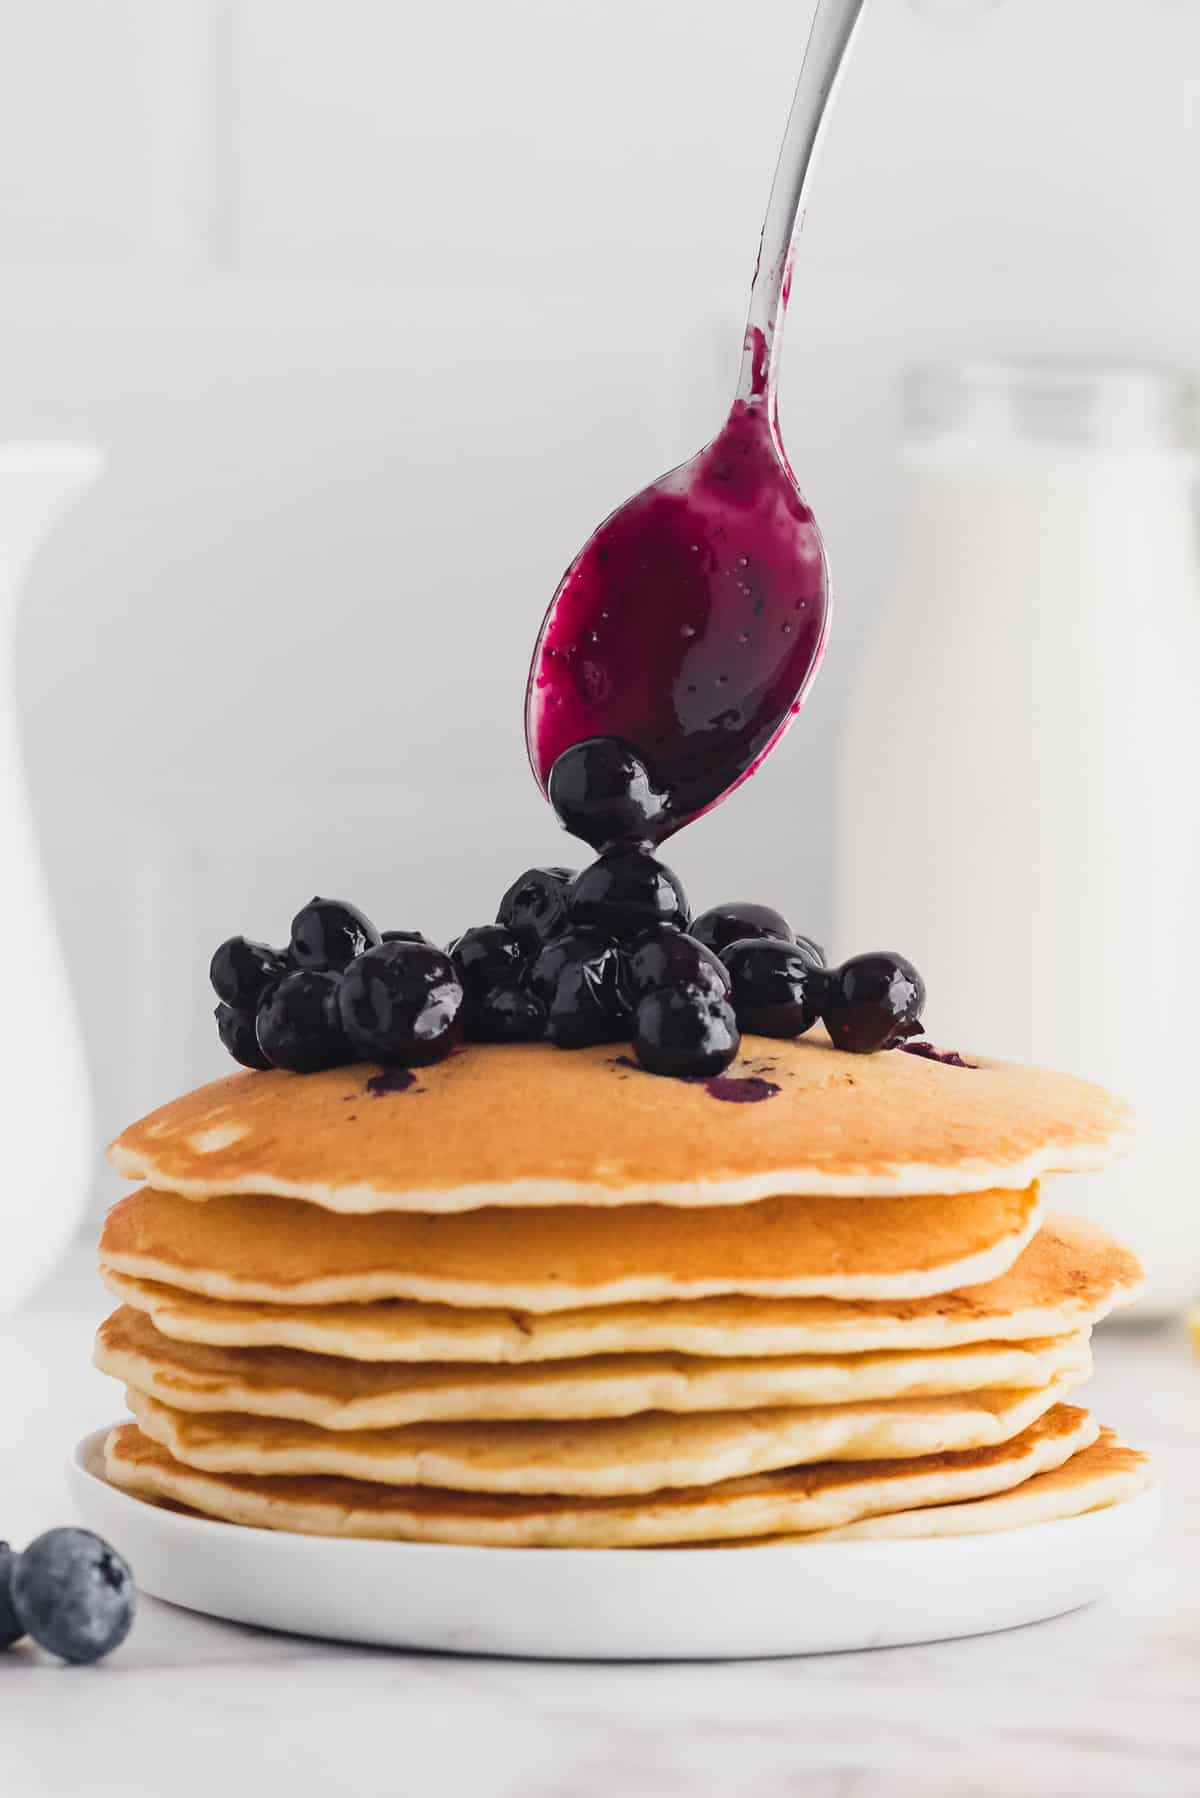 Blueberry sauce dripping down a stack of pancakes.